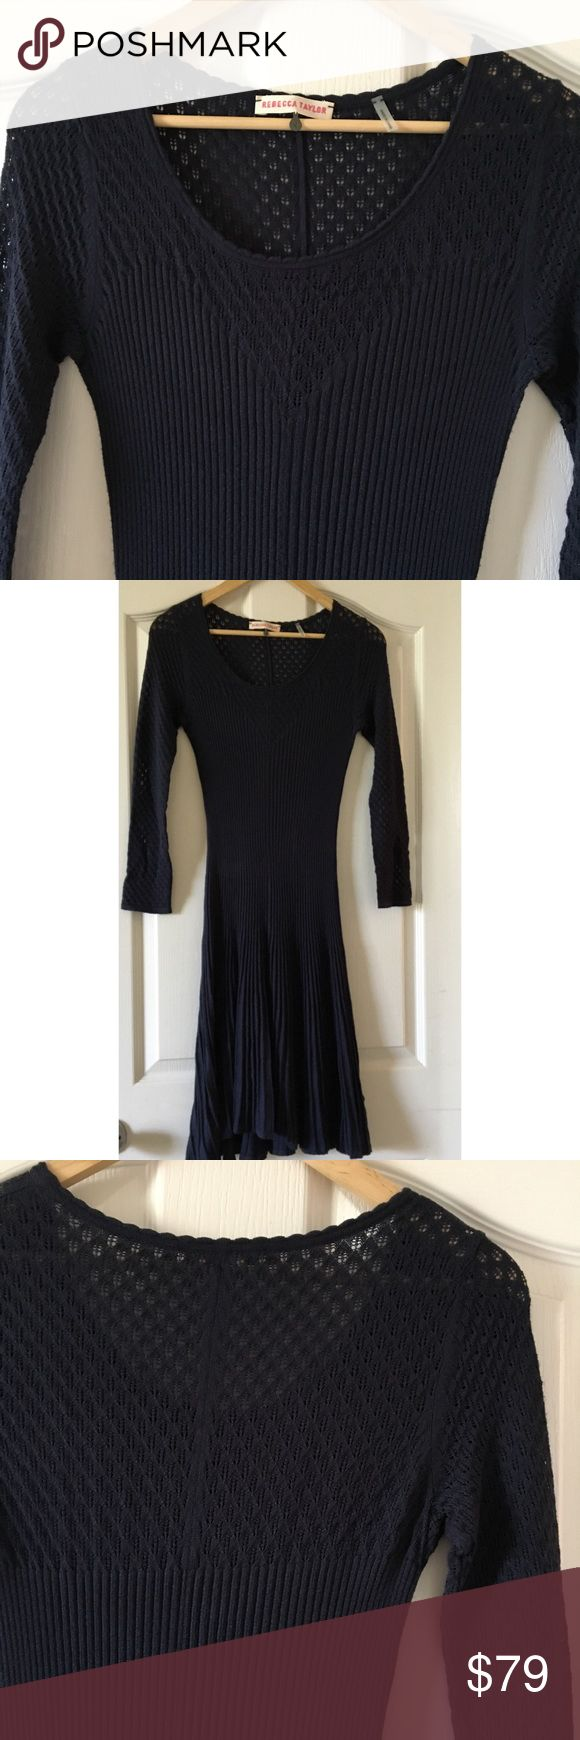 Rebecca Taylor Navy Blue Light Knitted Dress Beautiful Dress . Great for Fall . Accentuates curves . Its a light knit . Soft  65% Rayon 35% Nylon . New without Tags . Neiman Marcus dress Original 395. See online for Fitting Guidelines on her dresses . Rebecca Taylor Dresses Long Sleeve